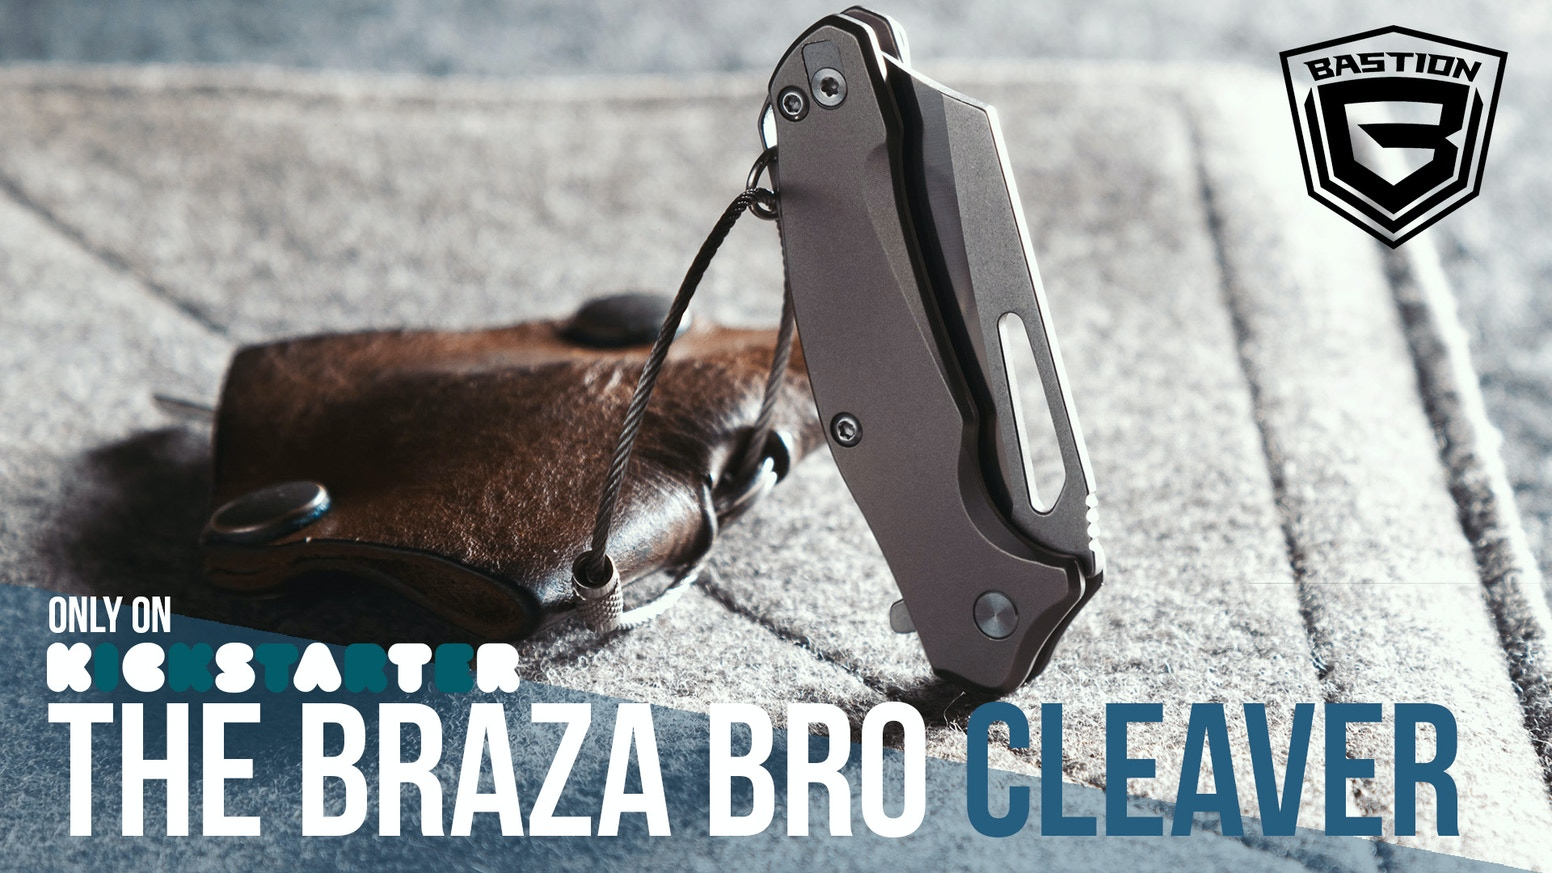 Braza Bro is back and mighter than ever. New style, materials & requested features. Carry this essential EDC tool with you everywhere!